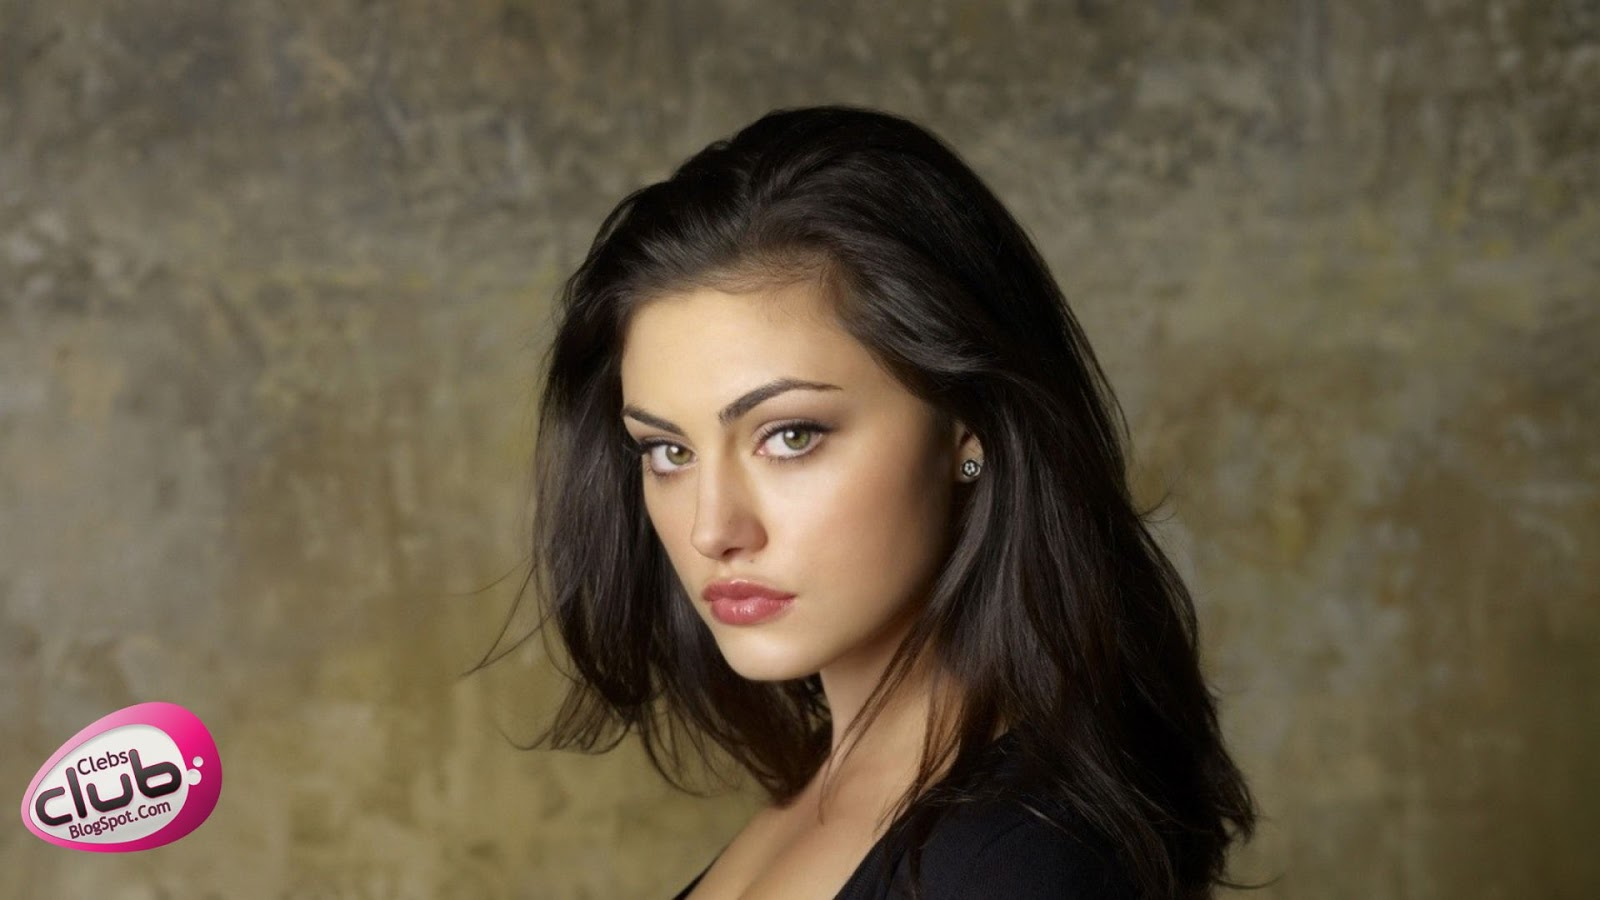 Hd celebrity wallpapers 1080p celebrity club - Celeb wallpapers ...